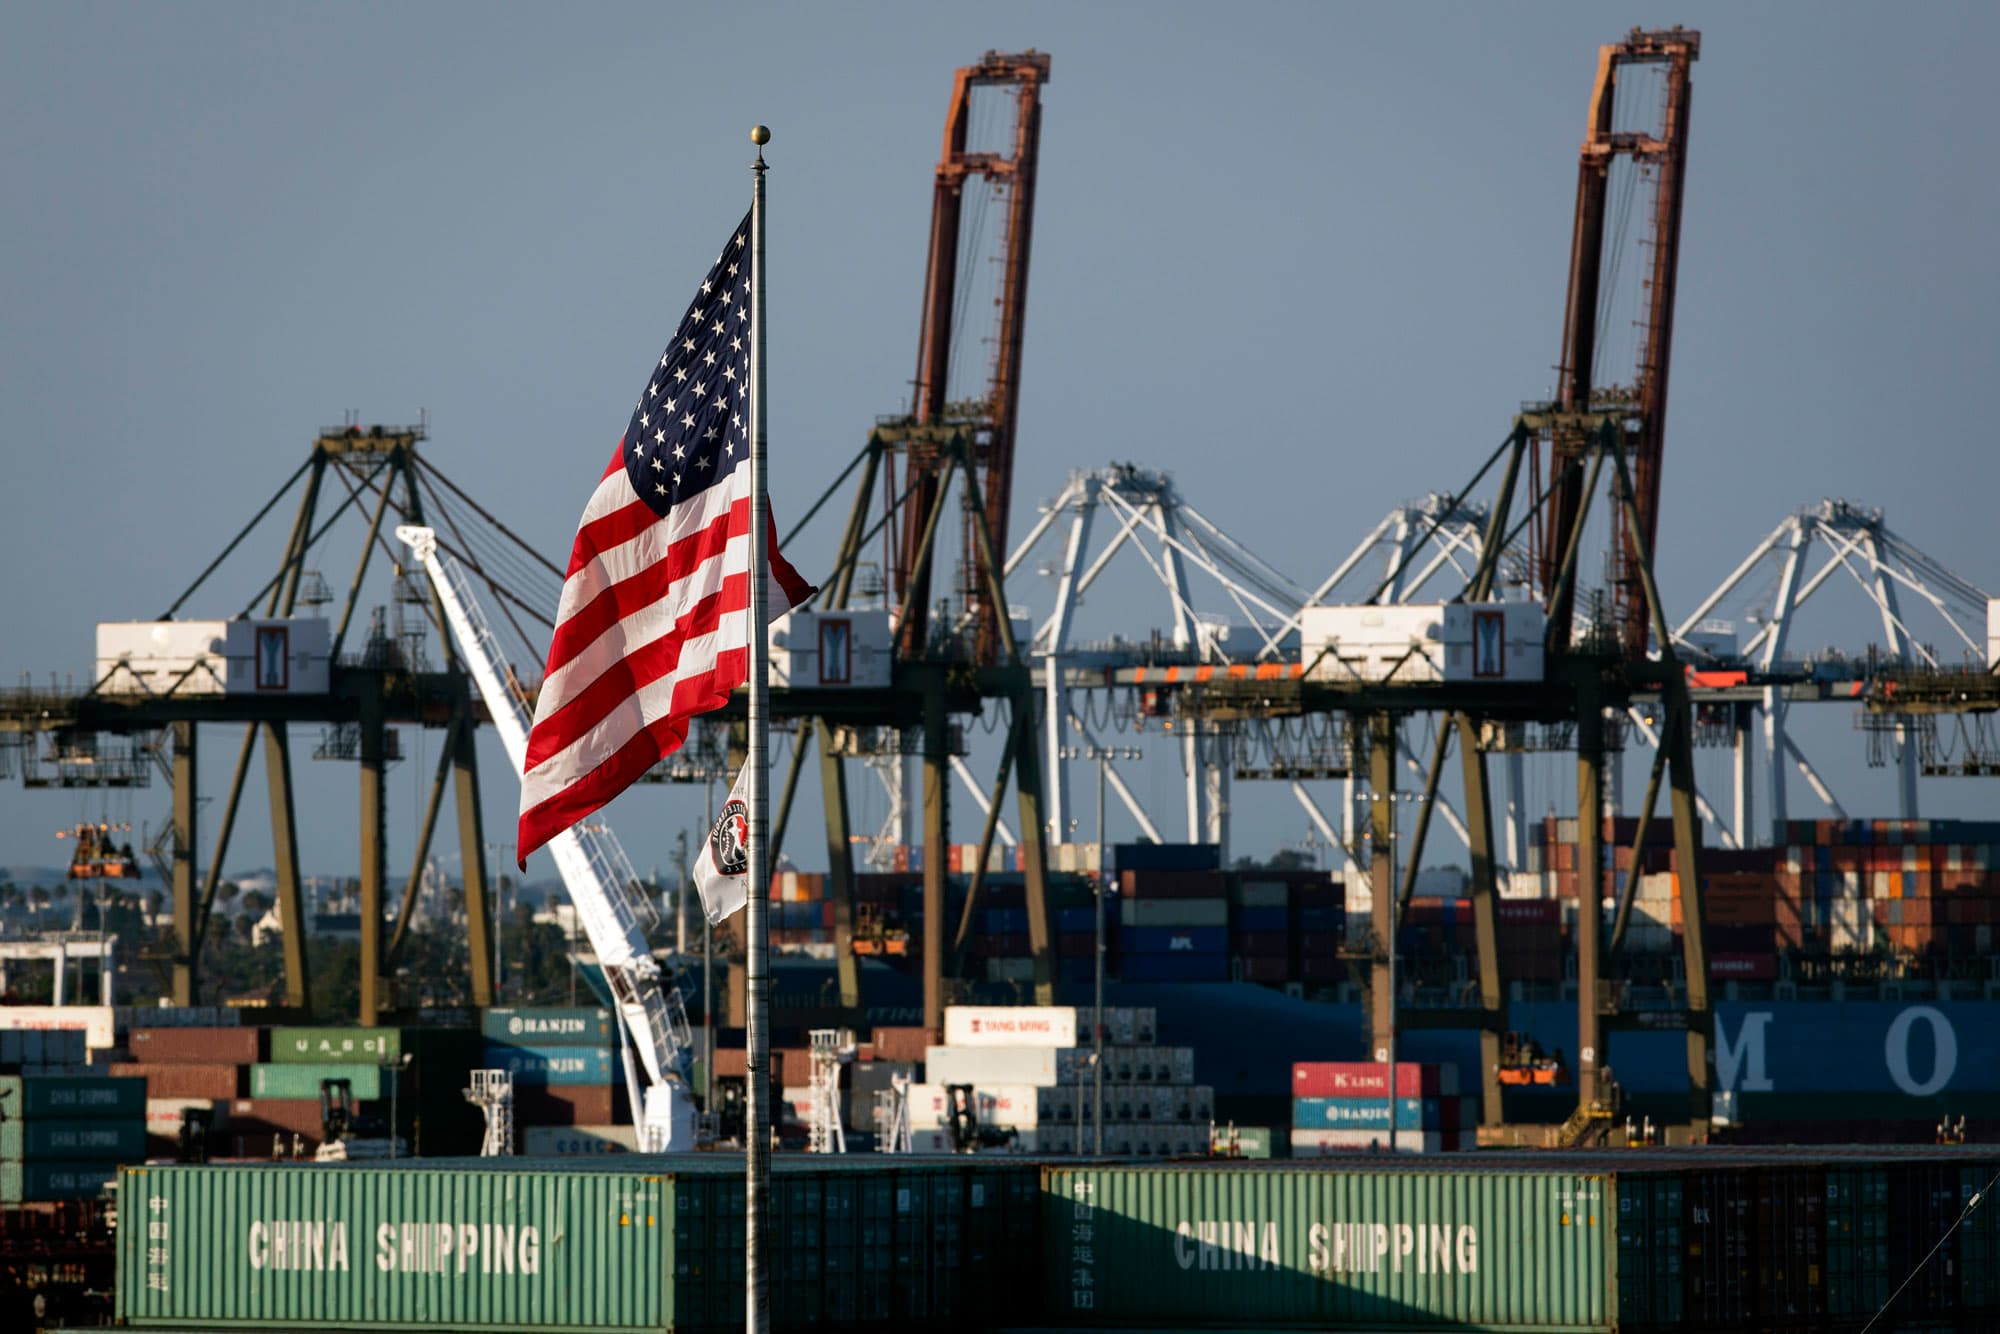 Trump's escalated trade war with China could hit California ports especially hard